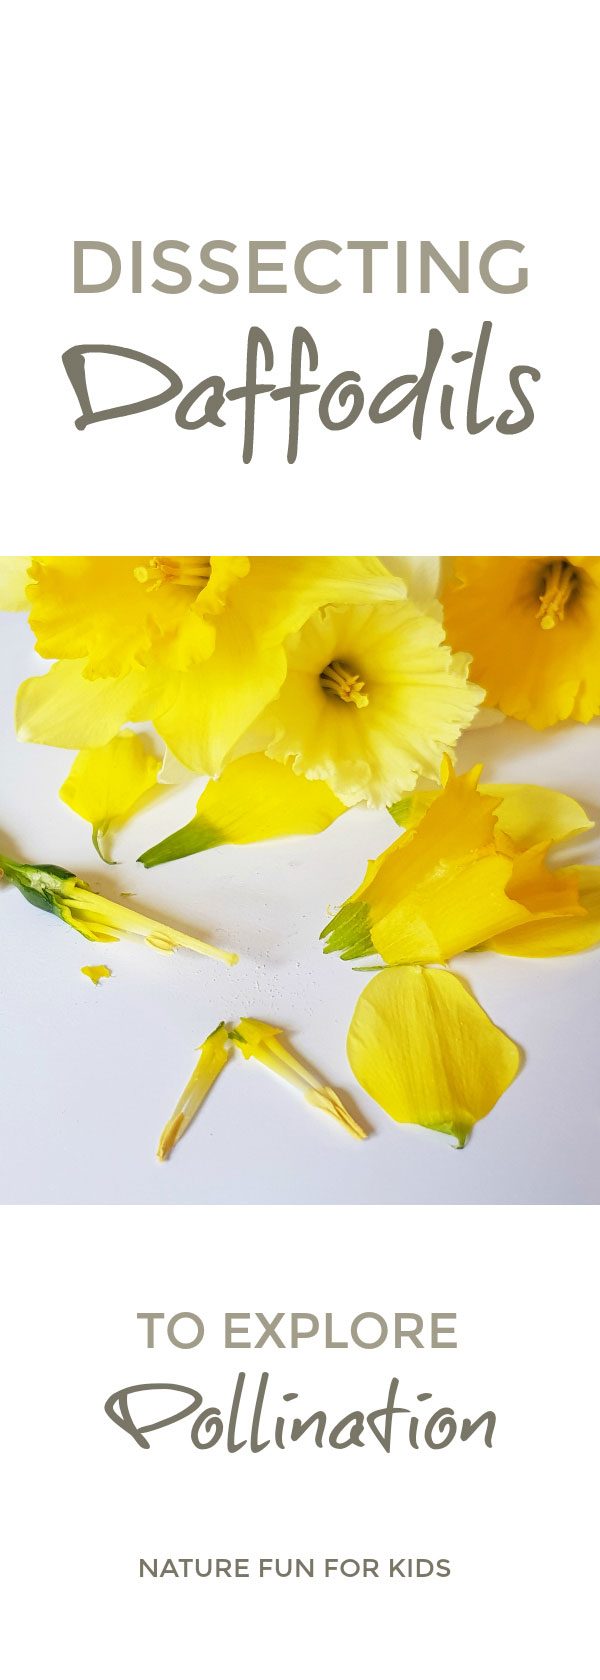 Dissecting Daffodils How to simply dissect daffodils with children to help them understand the parts of the flower, what happens during pollination and discover the secret eggs hidden inside the daffodil that are waiting to be pollinated #daffodils #flowers #pollination #nature #naturestudy #naturelover #STEAM #plantscience #primaryscience